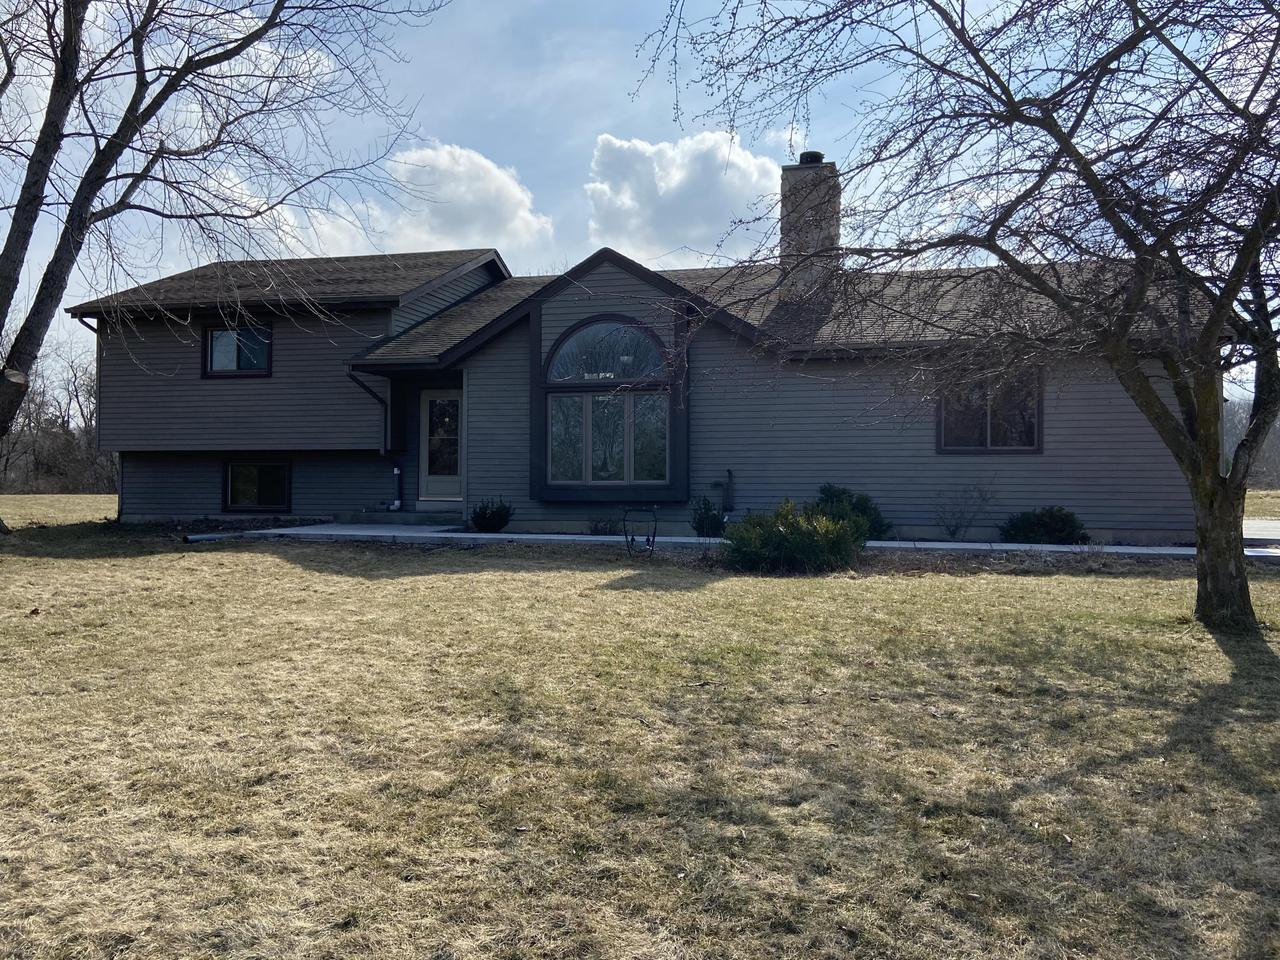 Located in Whispering Hills of Waubeesee Subdivision just off the shores of Waubeesee Lake.  House sits on a quiet cul-de-sac.  There is a partial view of the lake from the deck just off the kitchen. Open concept design, kitchen and dinette overlook living room. Features include new concrete driveway, patio and sidewalk.  All carpeting has been replaced. New well tank and control panel. The upper level has master and second bedroom, full bath along with kitchen and dinette. Main level has living room with natural fireplace. Lower level has third bedroom along with family room , full bath and large laundry room.